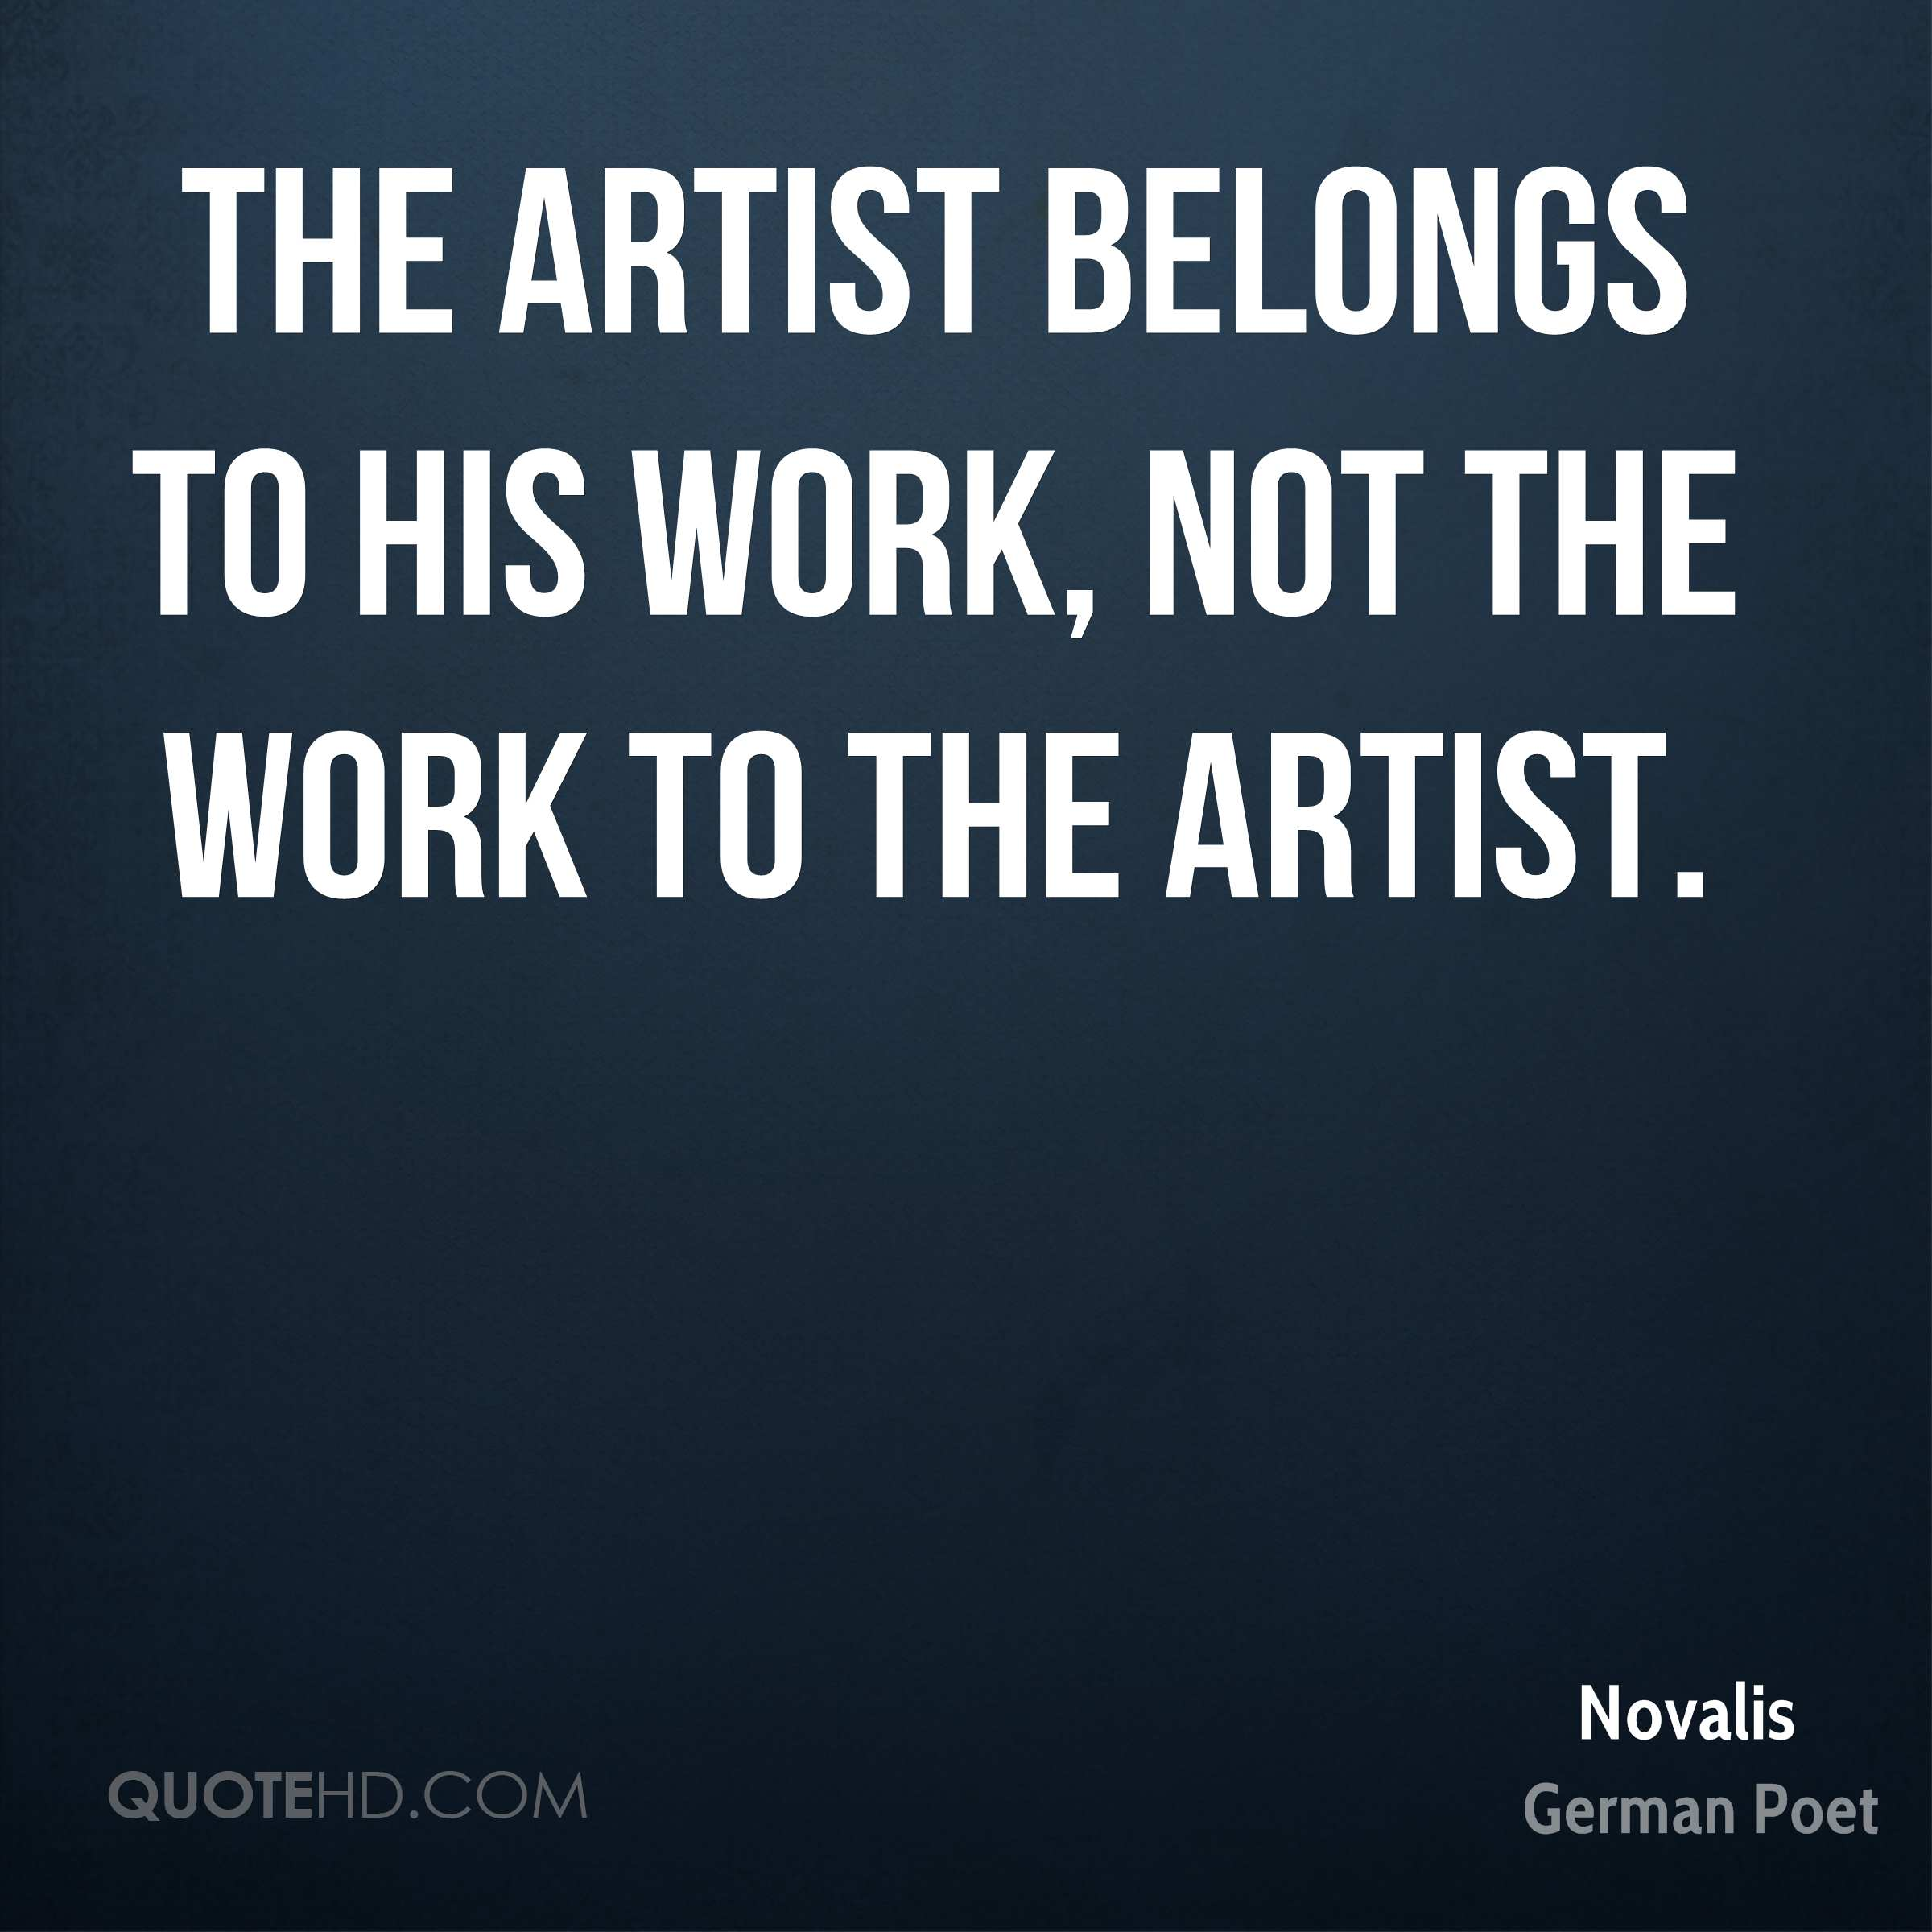 The artist belongs to his work, not the work to the artist.